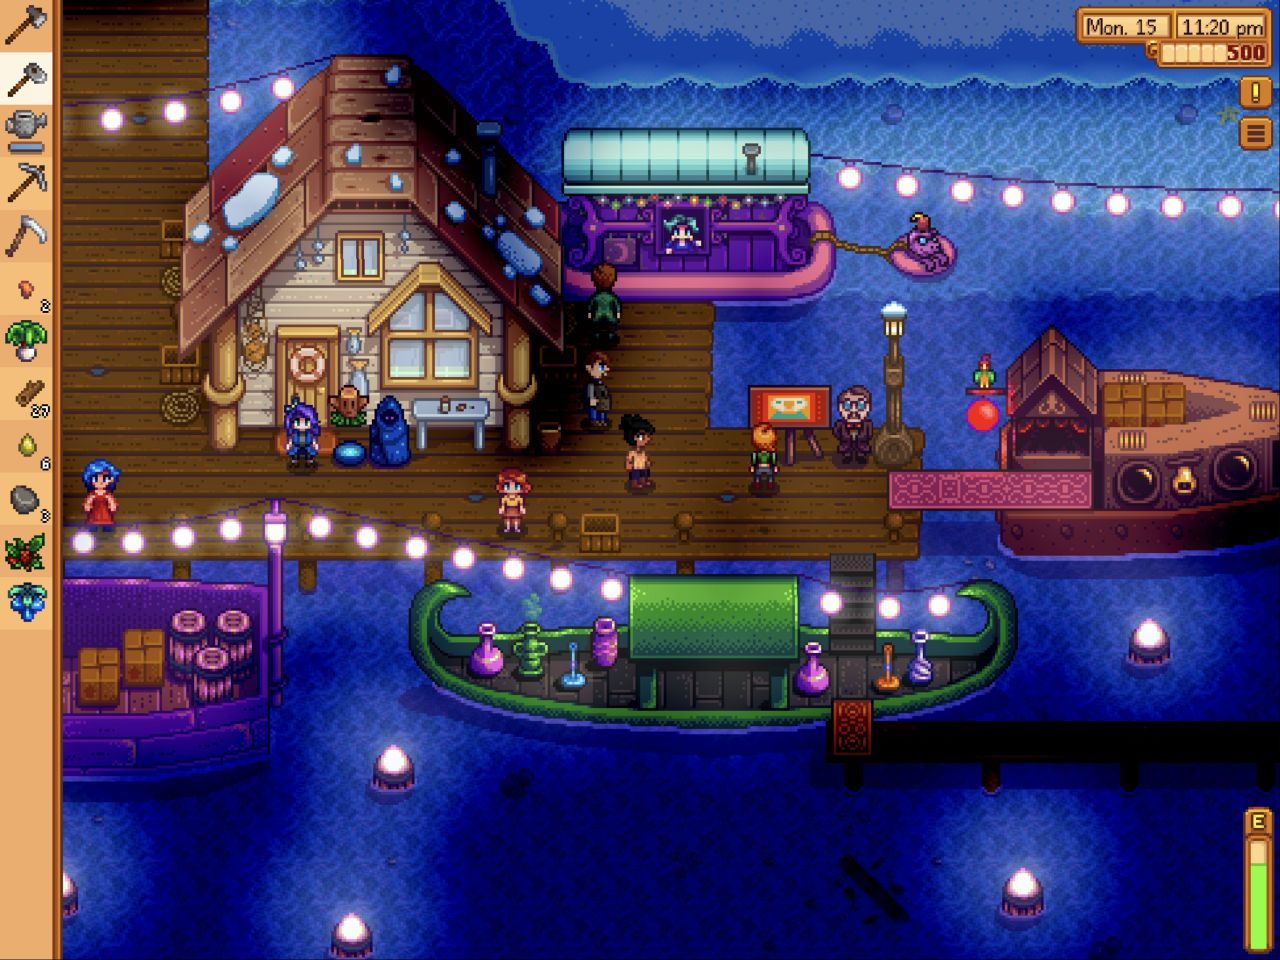 Stardew Valley is coming to mobile this month, first on iOS